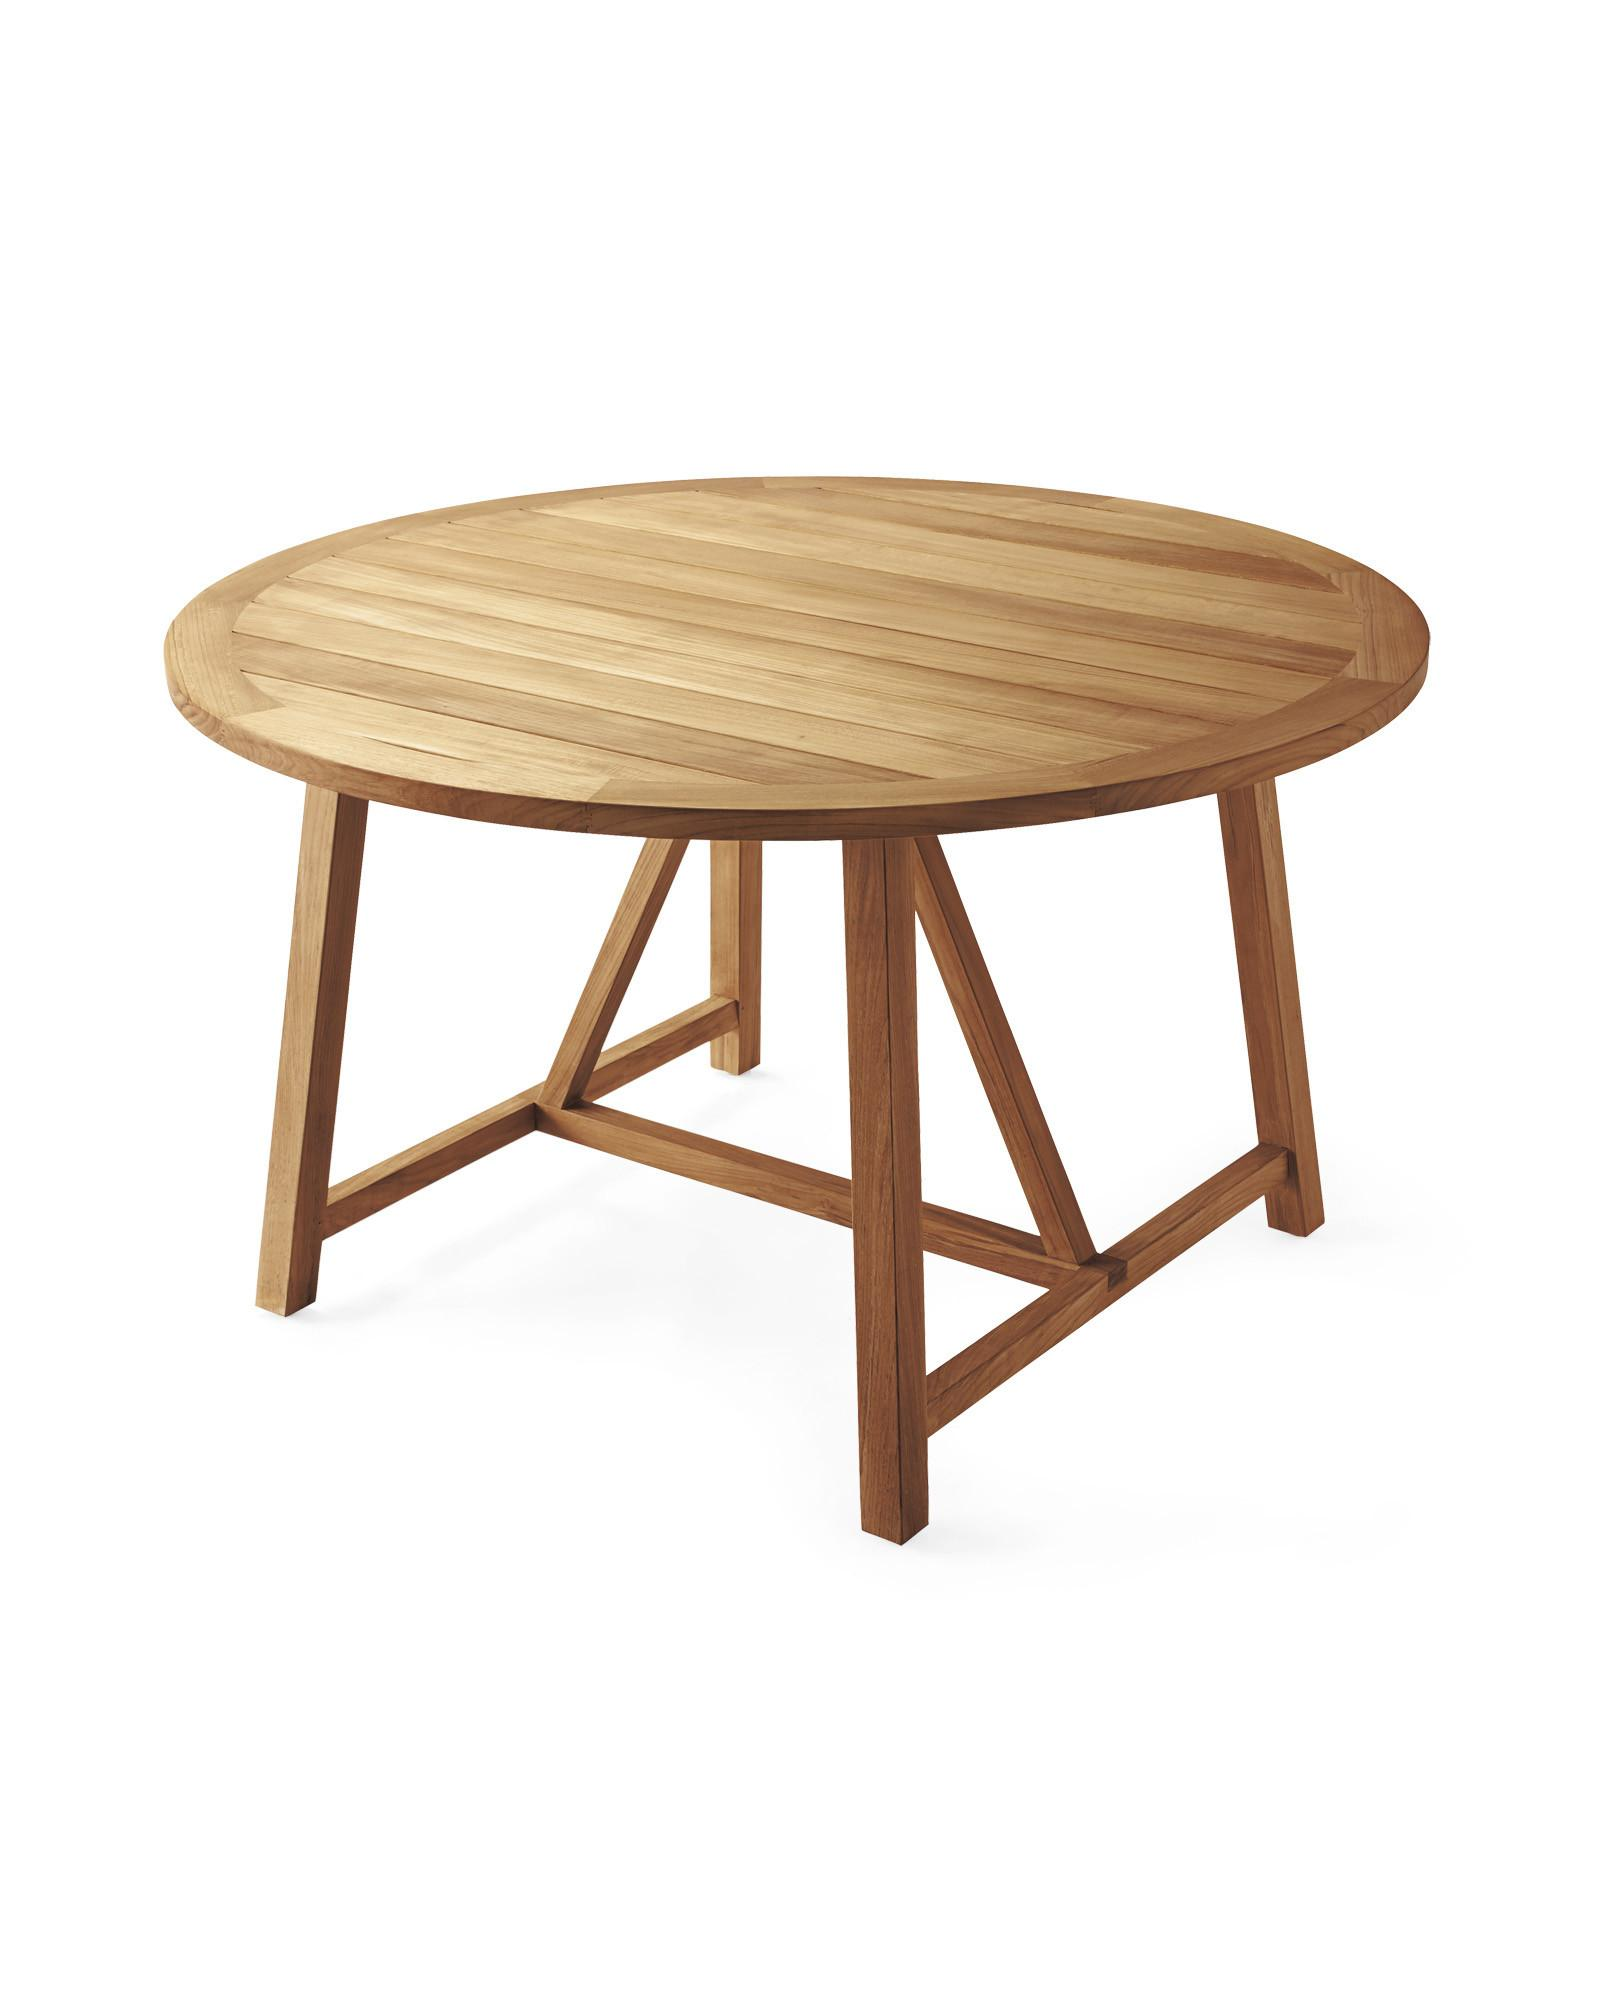 Epic Round Teak Dining Table Modern Home Decor